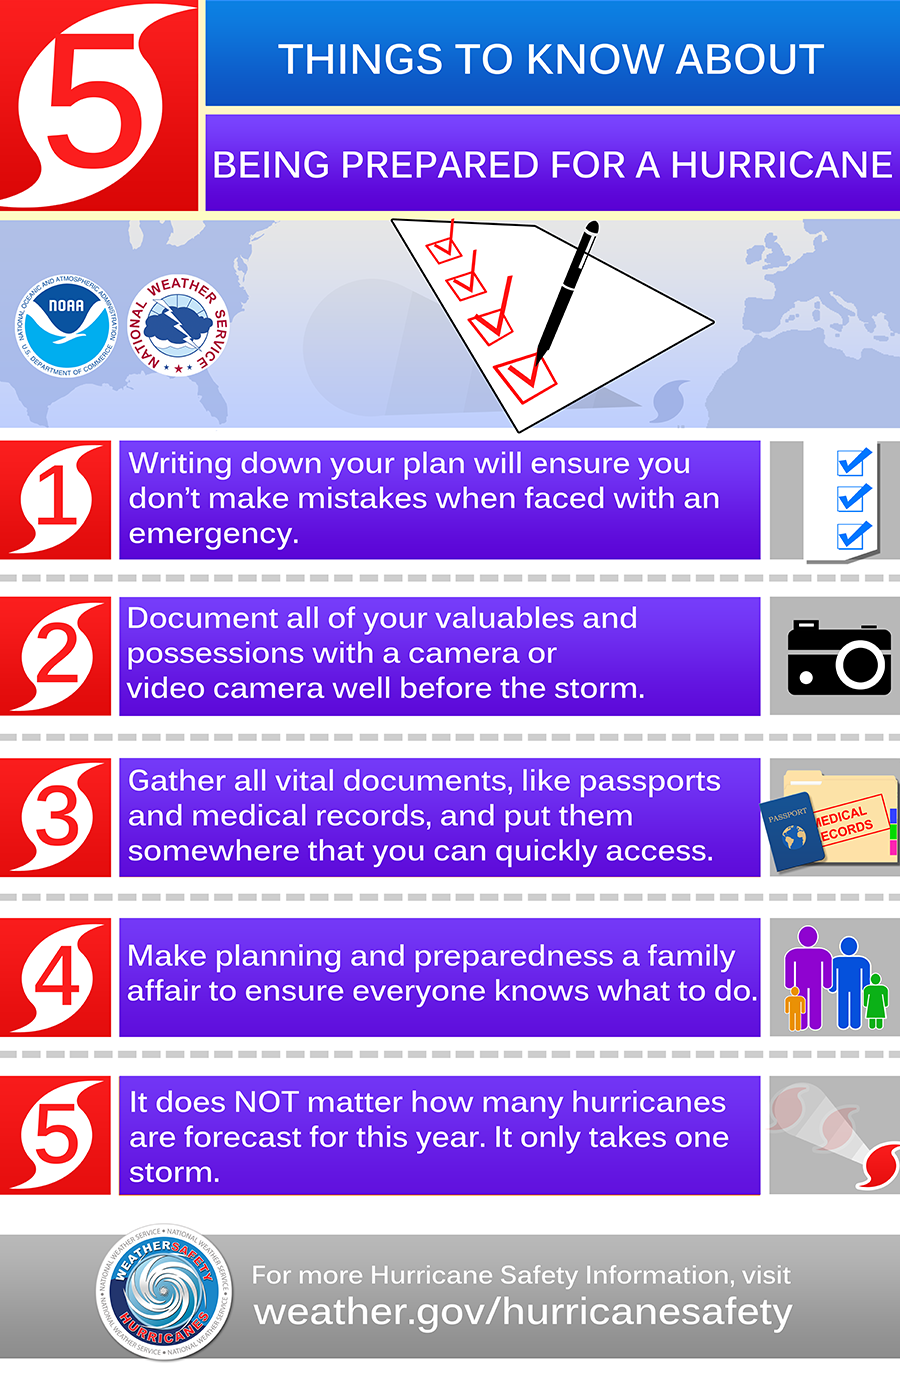 Things to know about being prepared for a hurricane